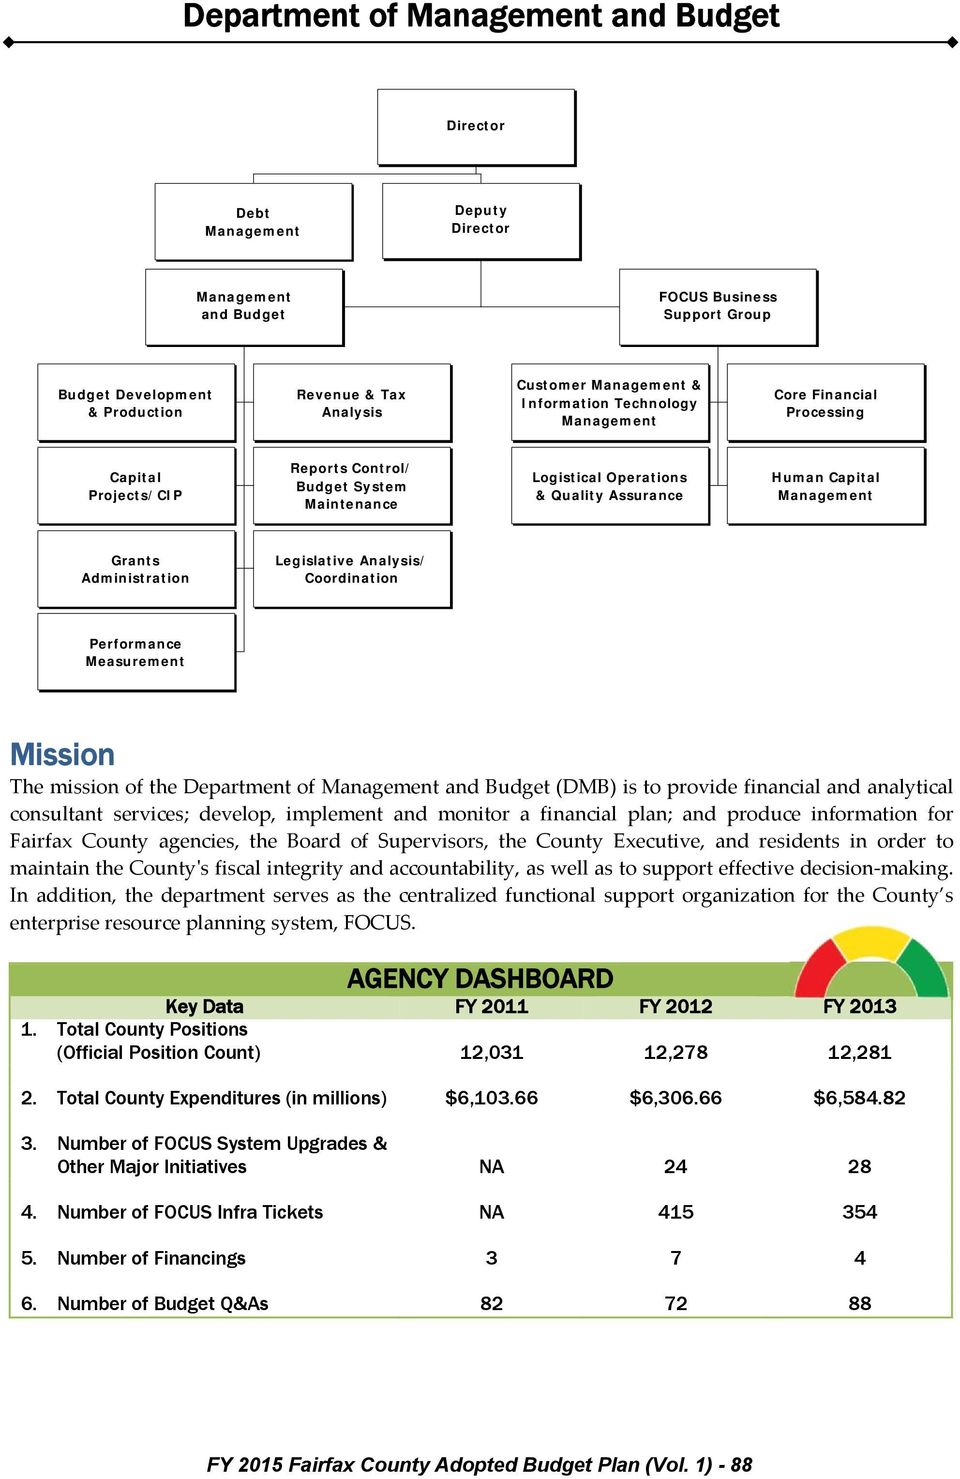 Mission The mission of the Department of and Budget (DMB) is to provide financial and analytical consultant services; develop, implement and monitor a financial plan; and produce information for